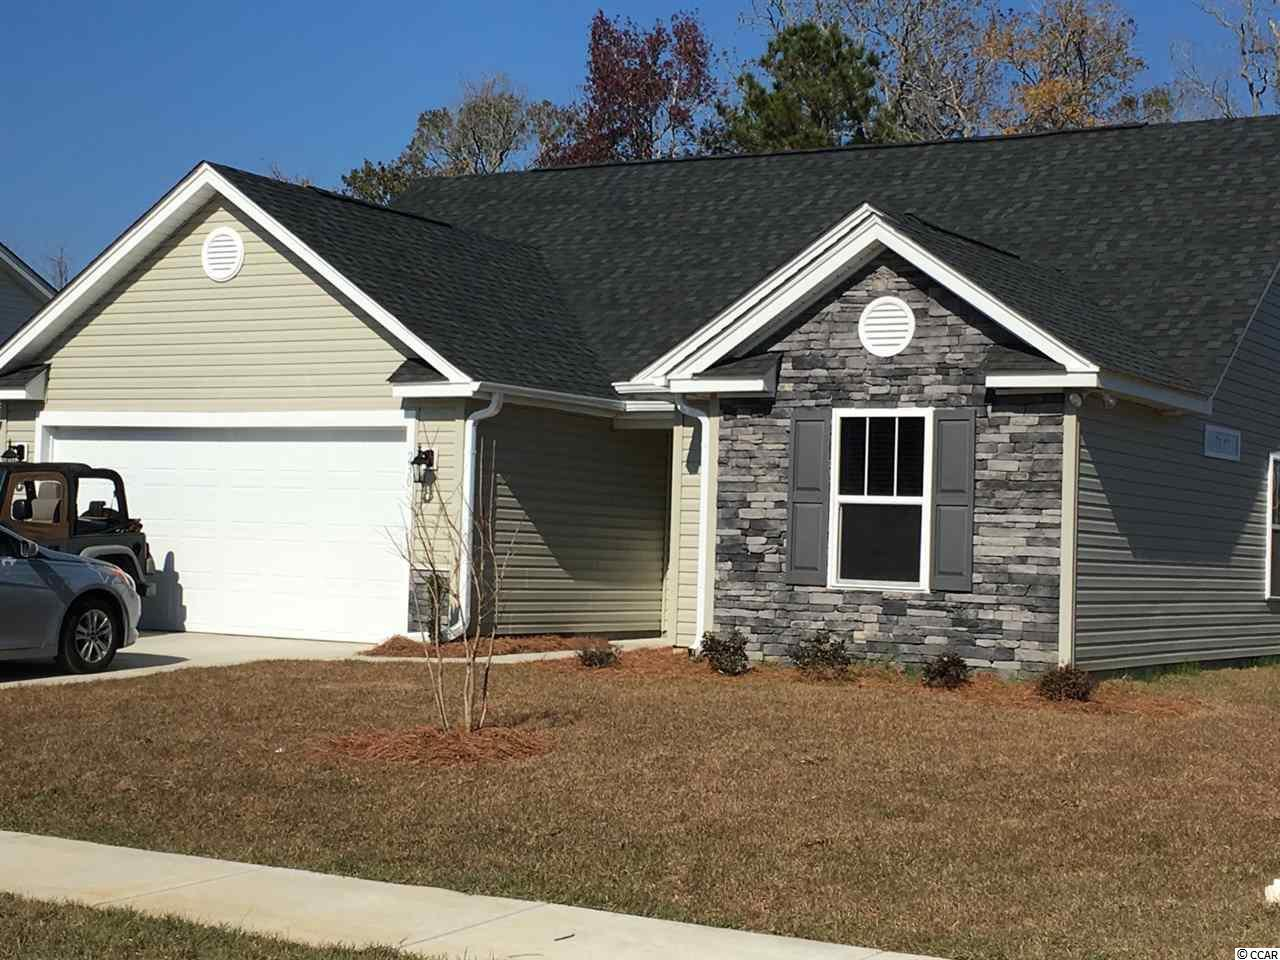 Homes For Sale In The Diamond Myrtle Beach Sc